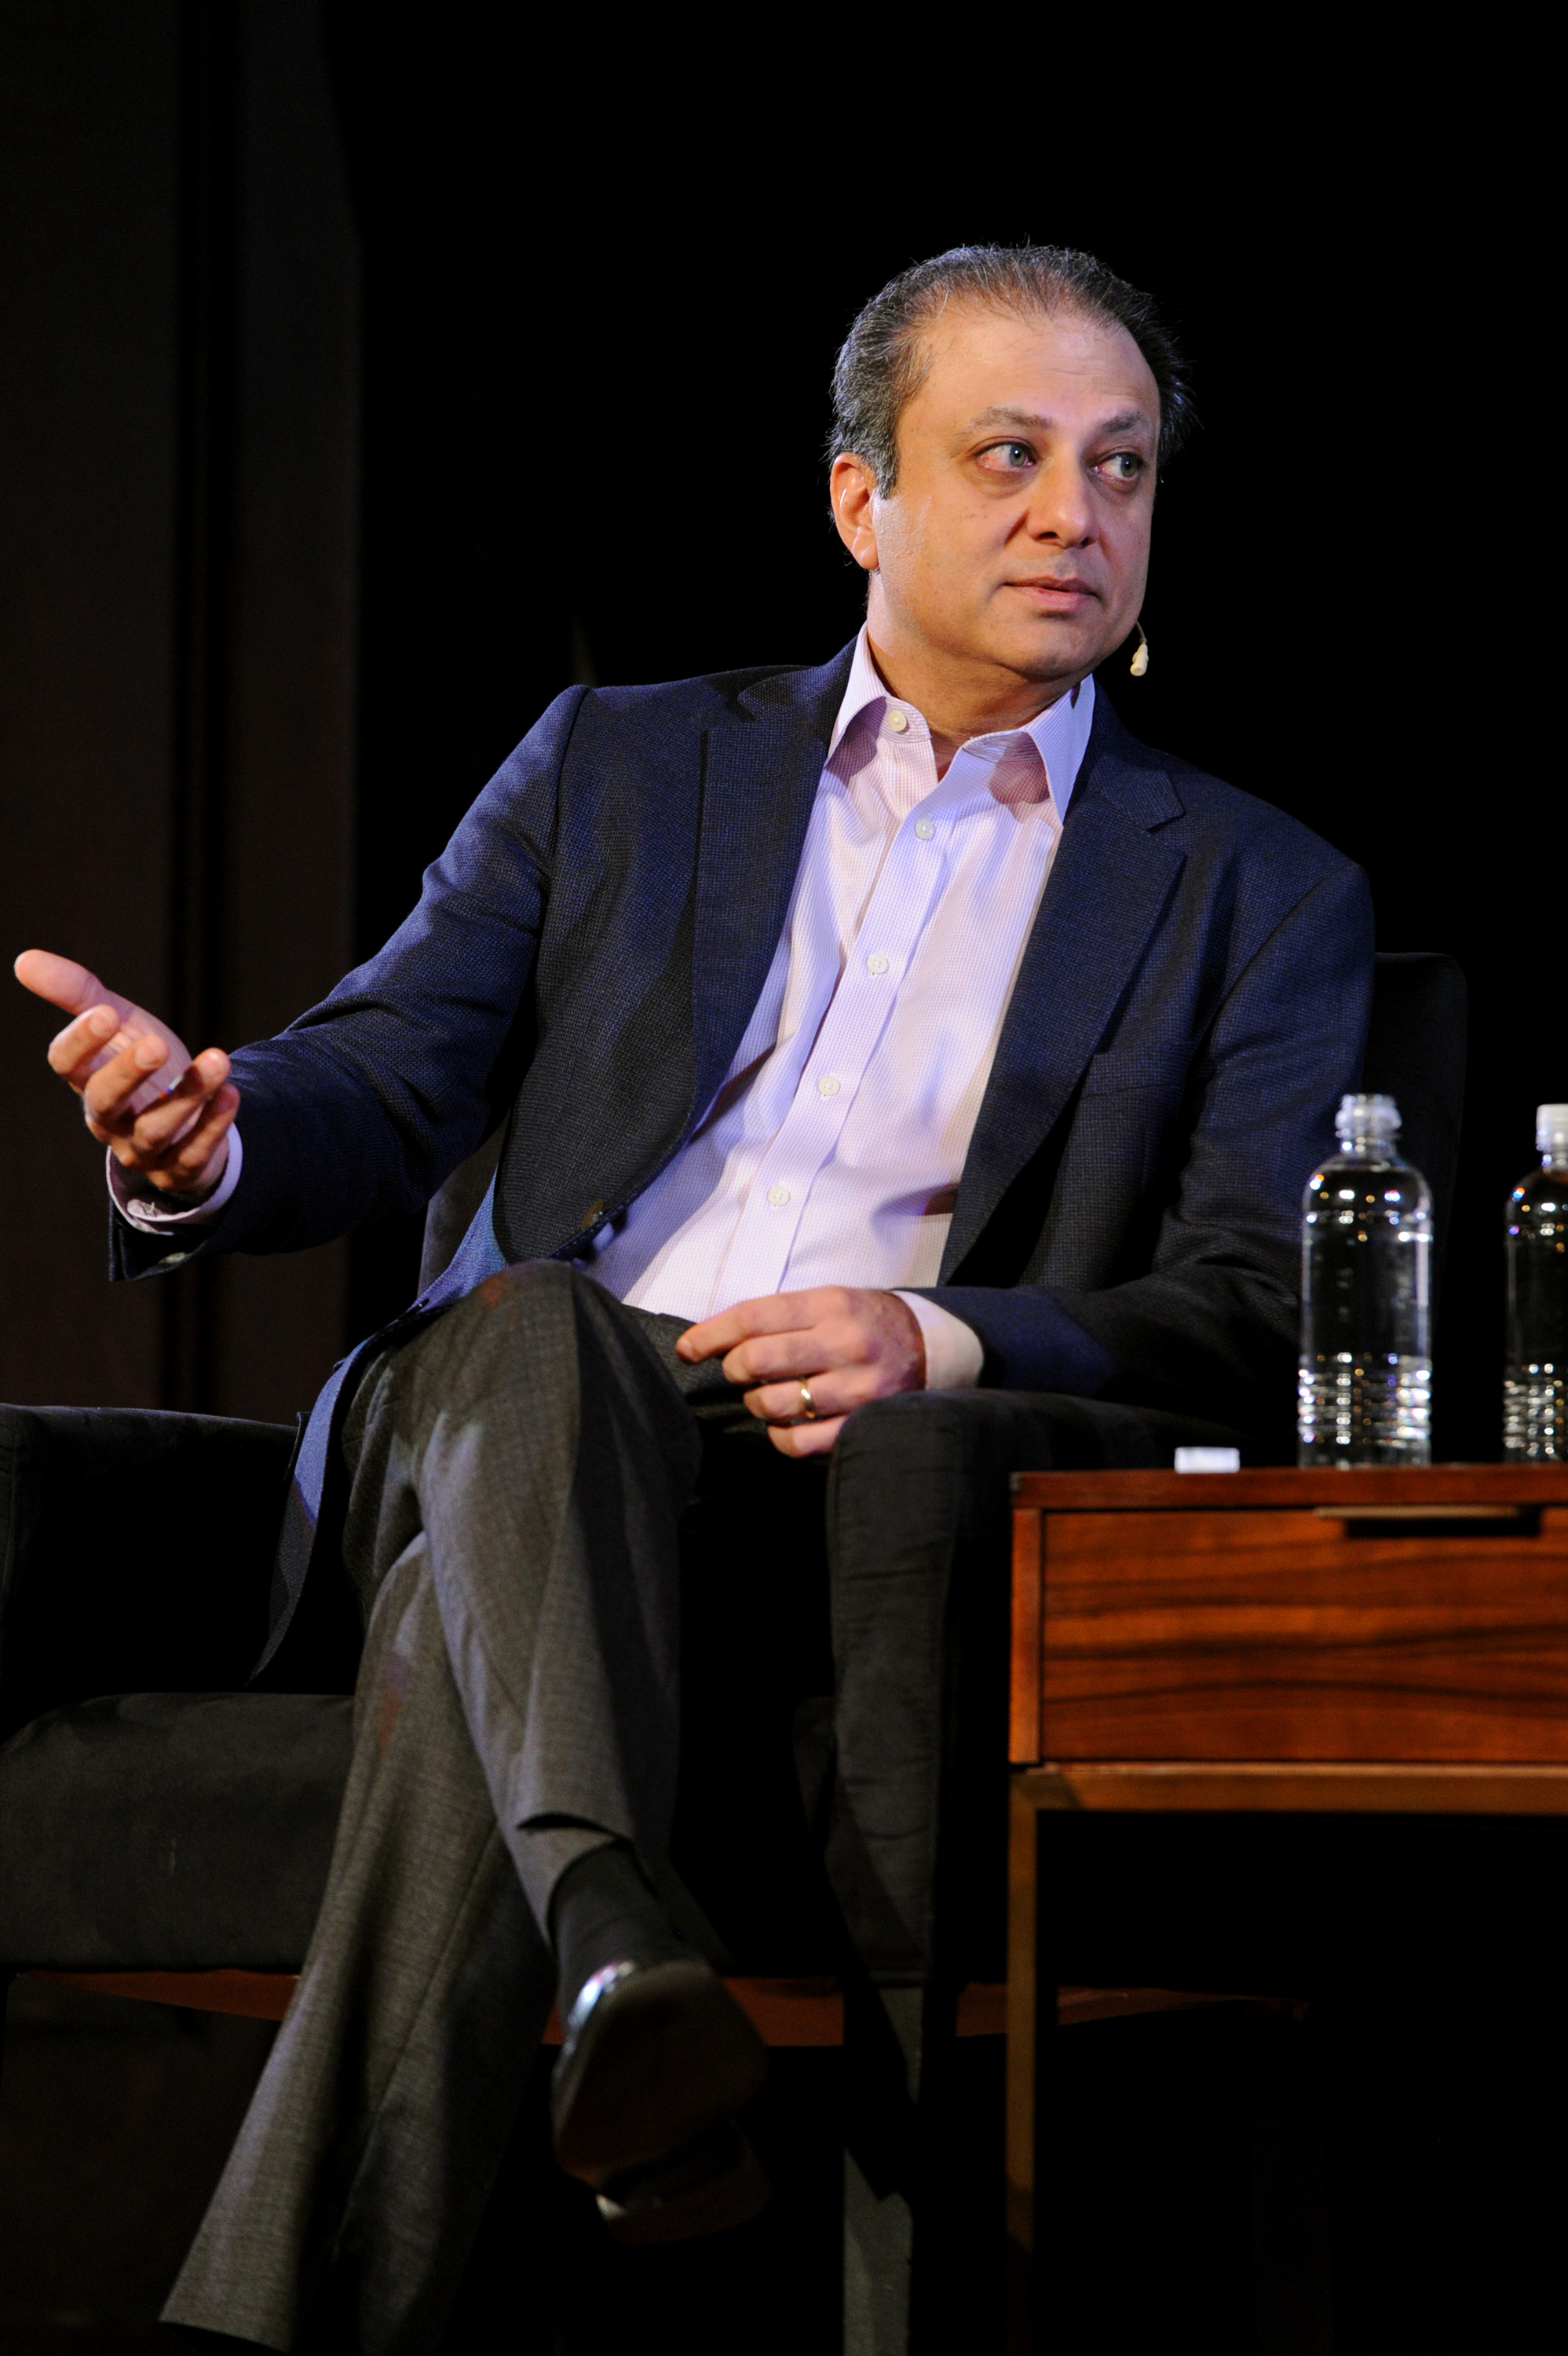 Former US Attorney Preet Bharara says good journalism may have undermined the Mueller report